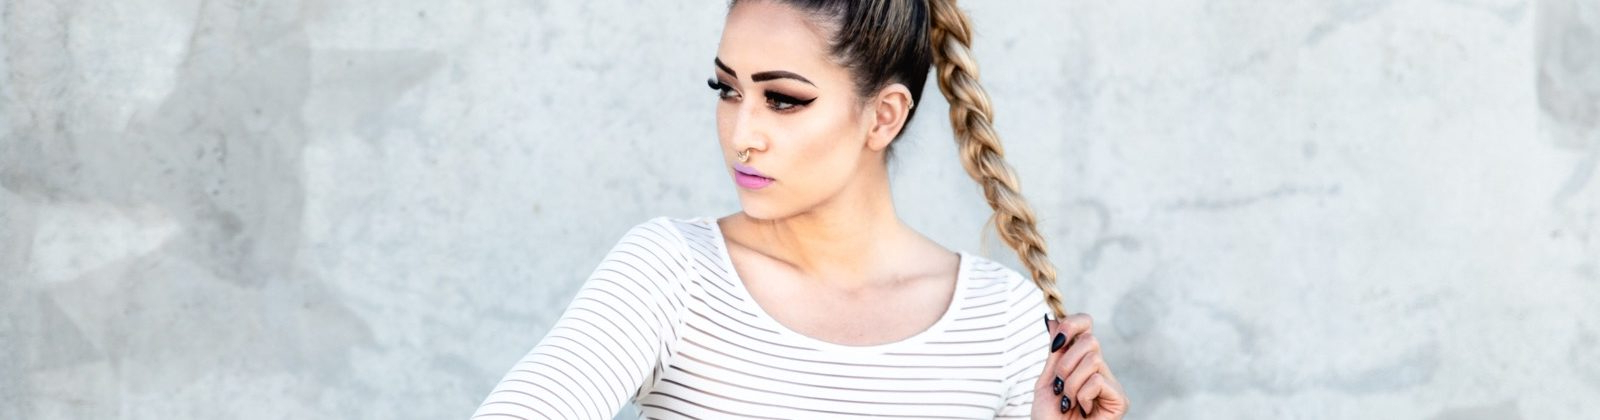 113 Complete Braid Hairstyles List For All Types, Styles And Throughout Recent Grecian Inspired Ponytail Braid Hairstyles (View 24 of 25)